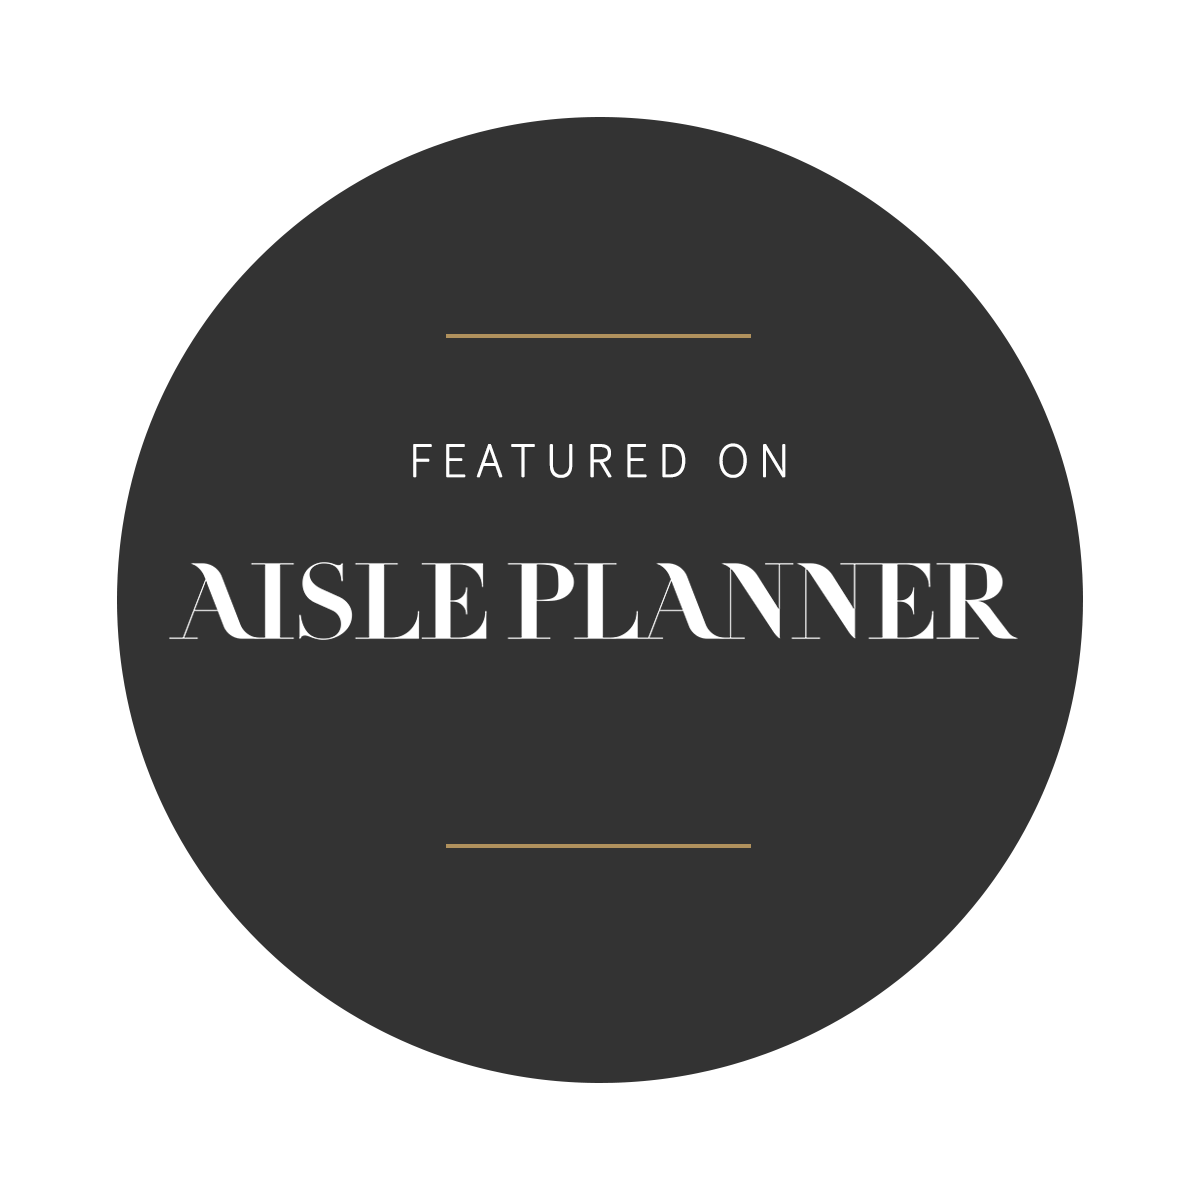 featured-on-aisle-planner-dark (1).png